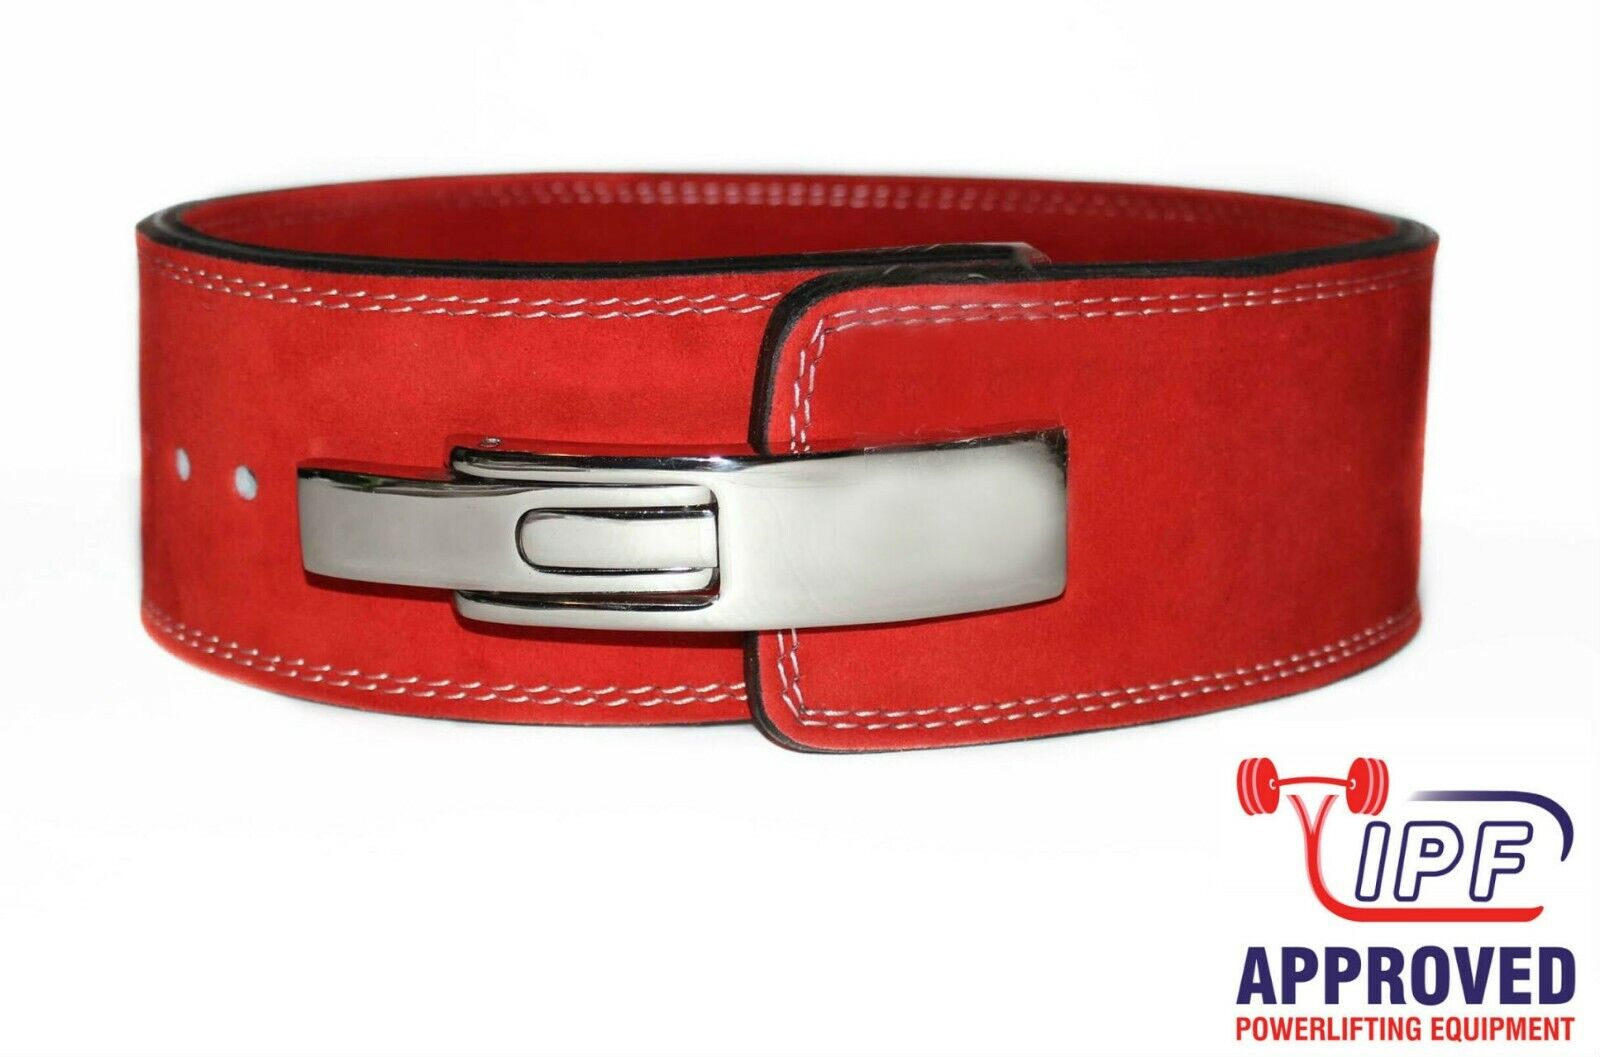 Strength Shop 10MM rot POWERLIFTING LEVER BELT (MEDIUM) - FAST SHIPPING